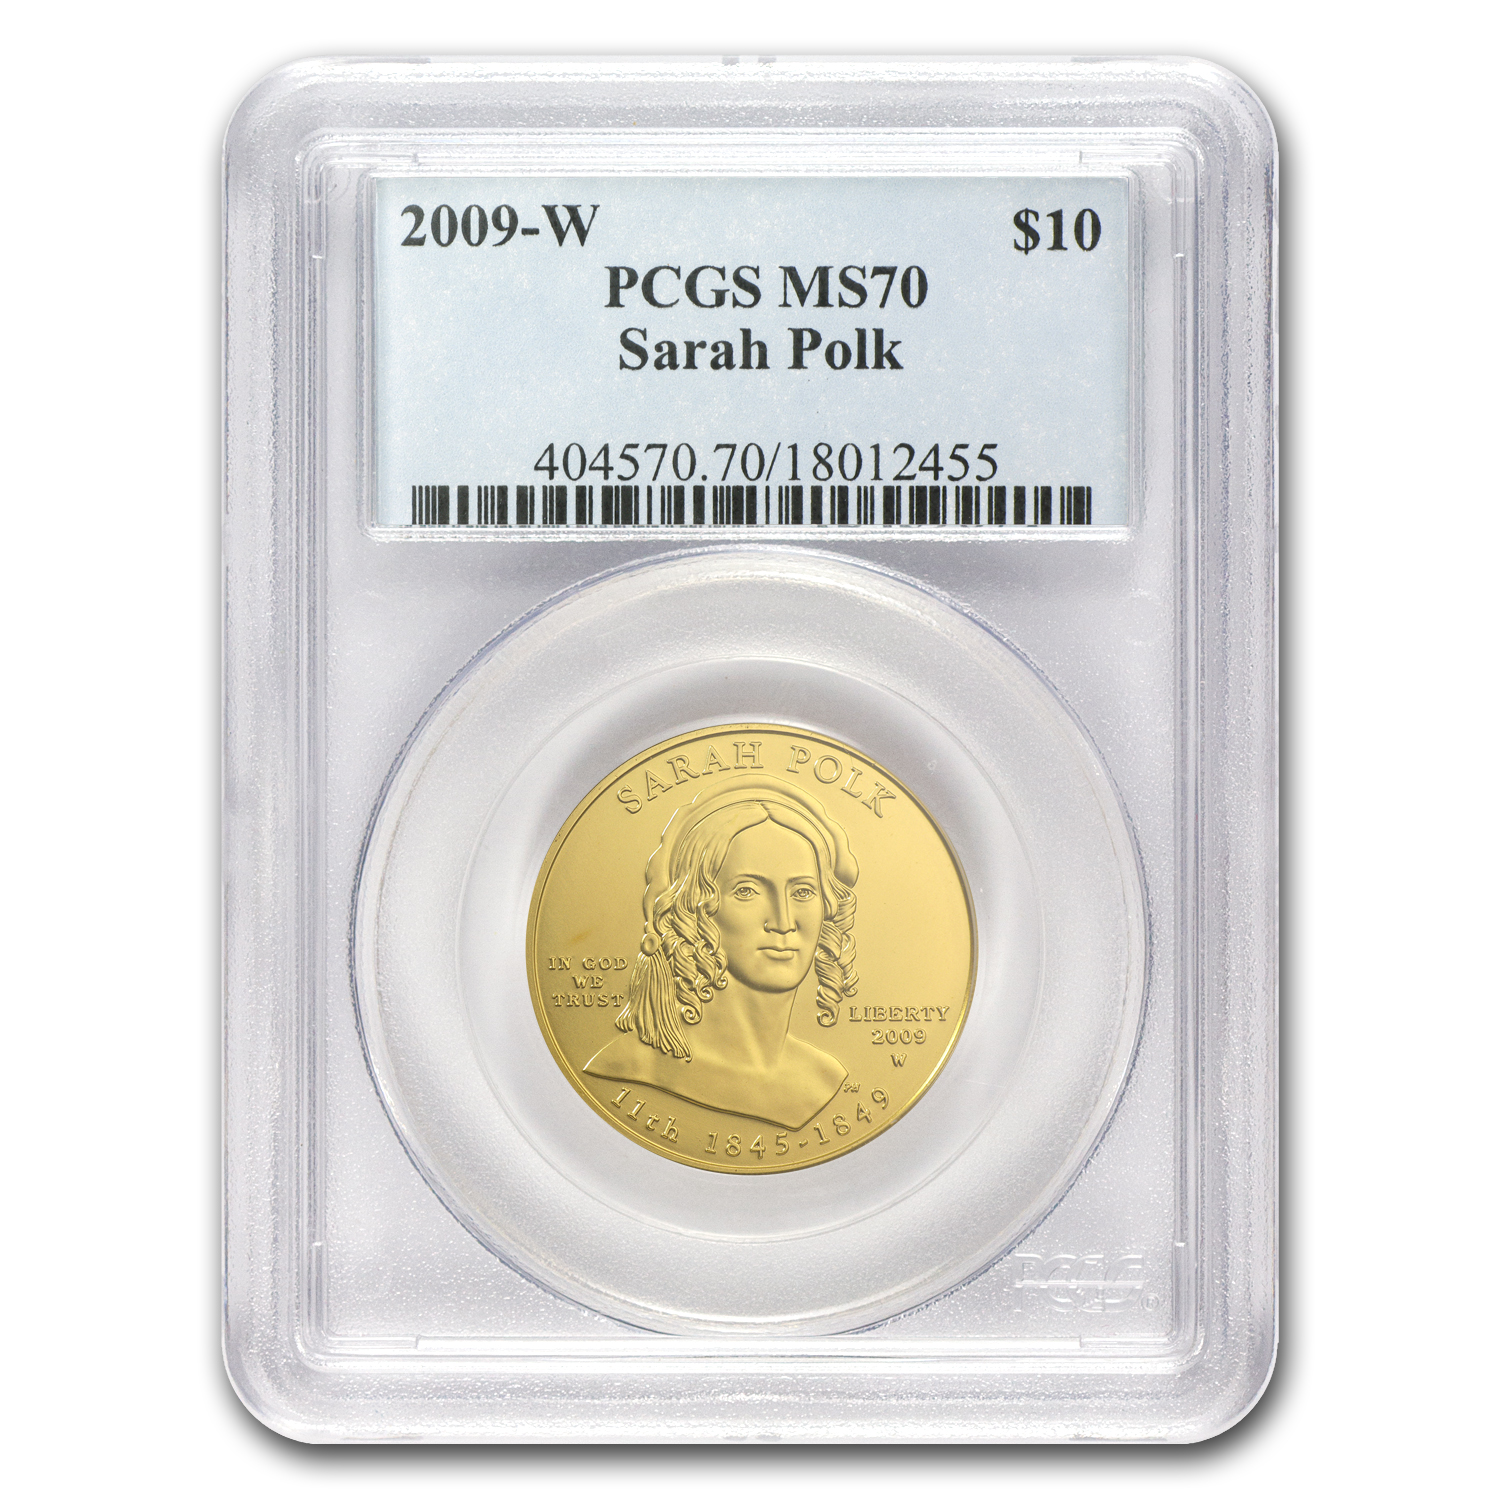 2009-W 1/2 oz Uncirculated Gold Sarah Polk MS-70 PCGS